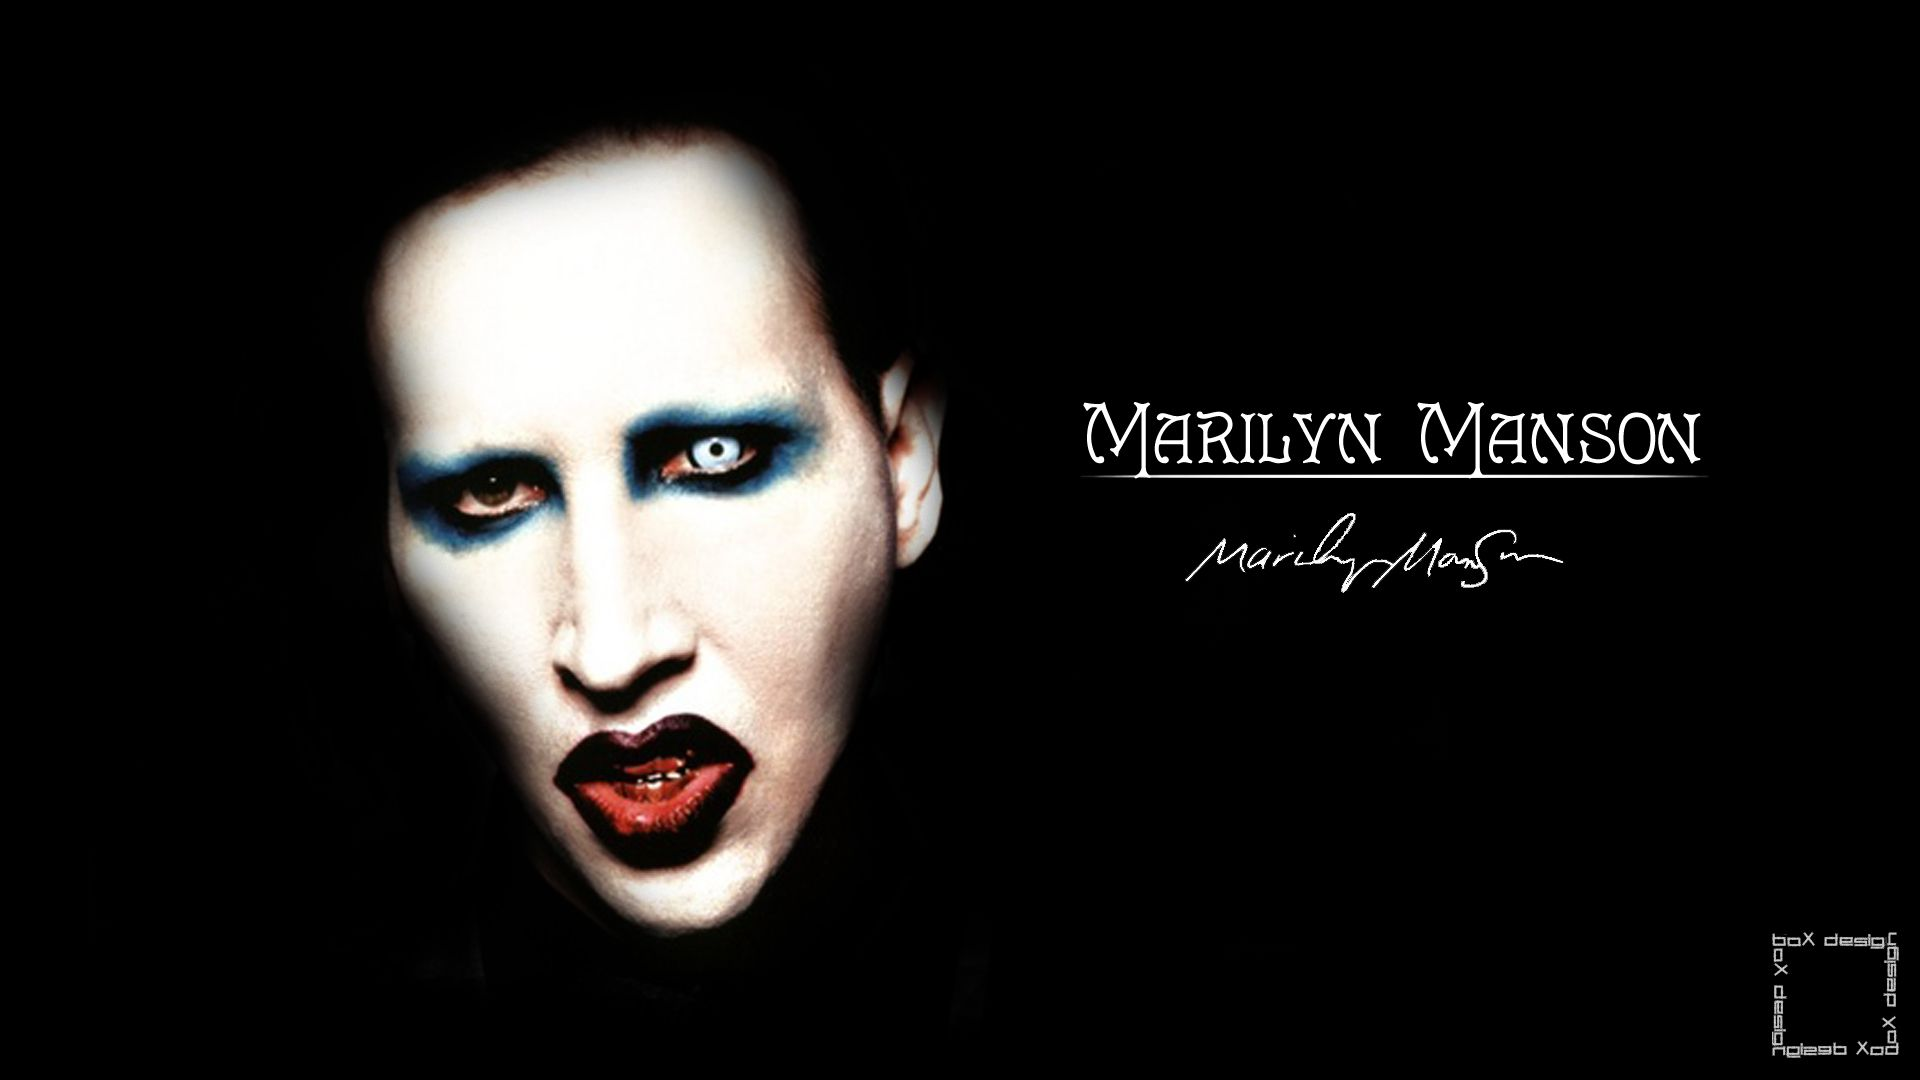 Marilyn Manson Wallpapers Hd Wallpapers Inn In 2019